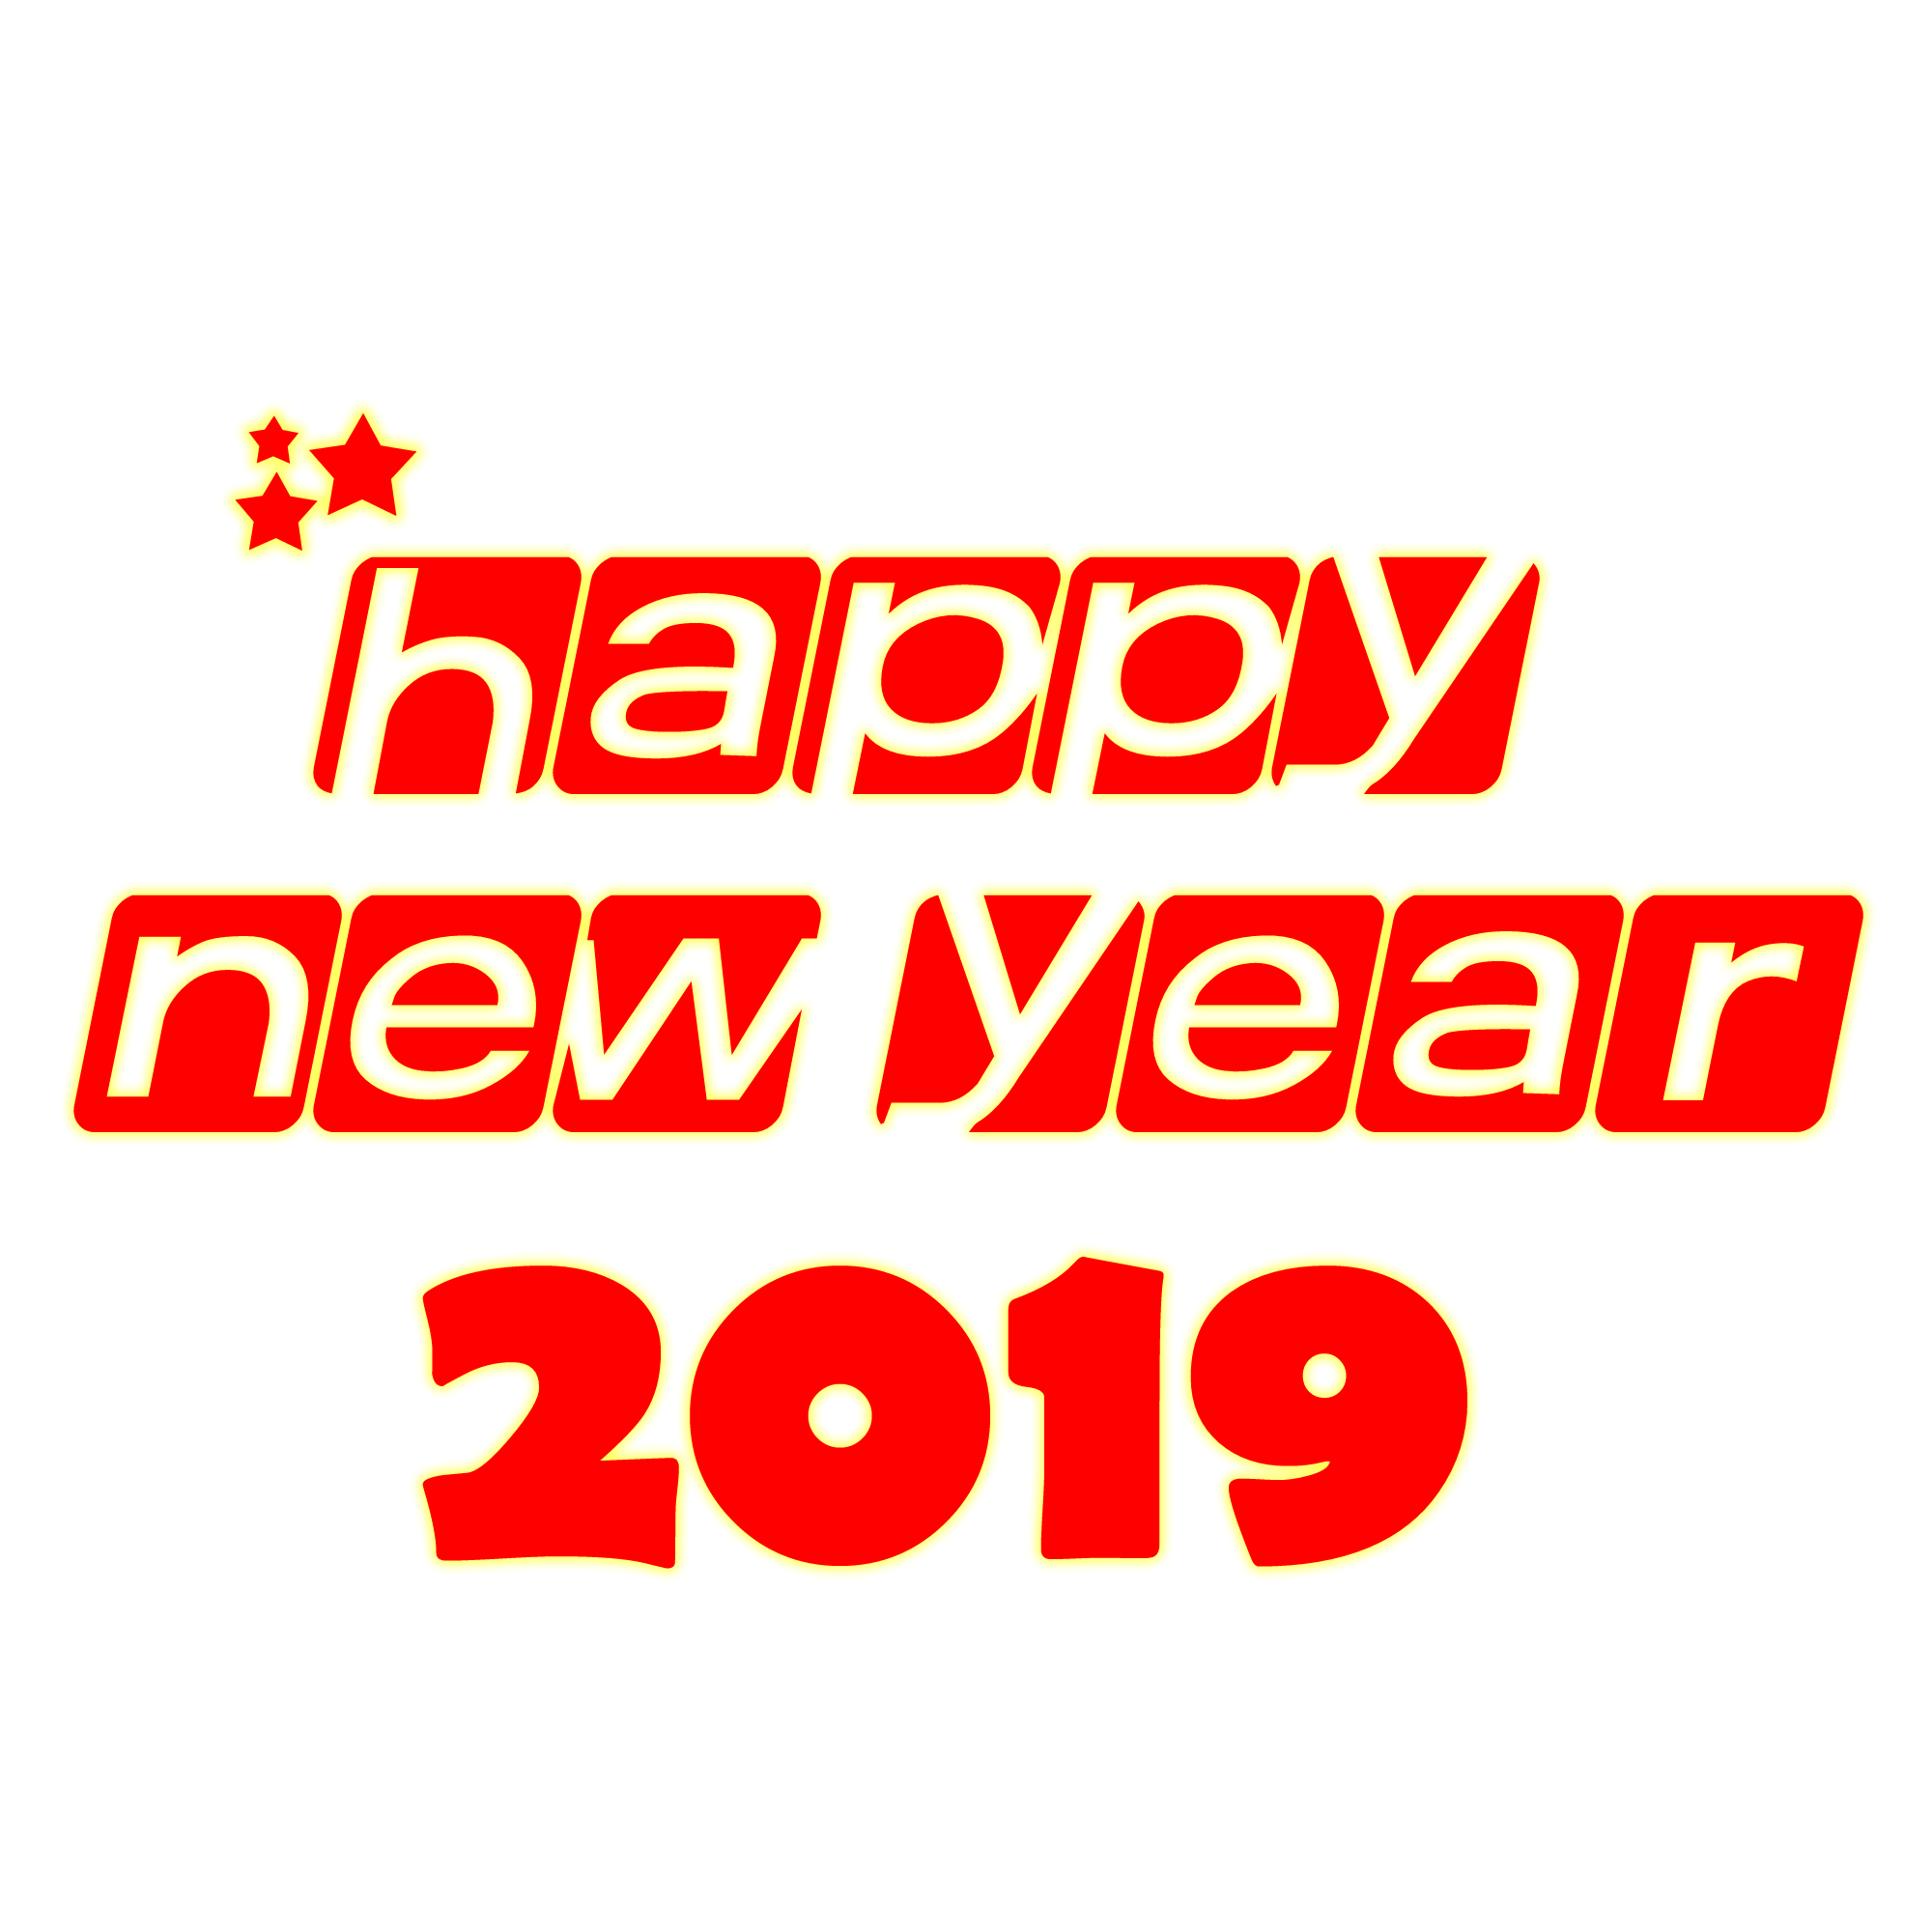 2019 happy new year transparent background.png.